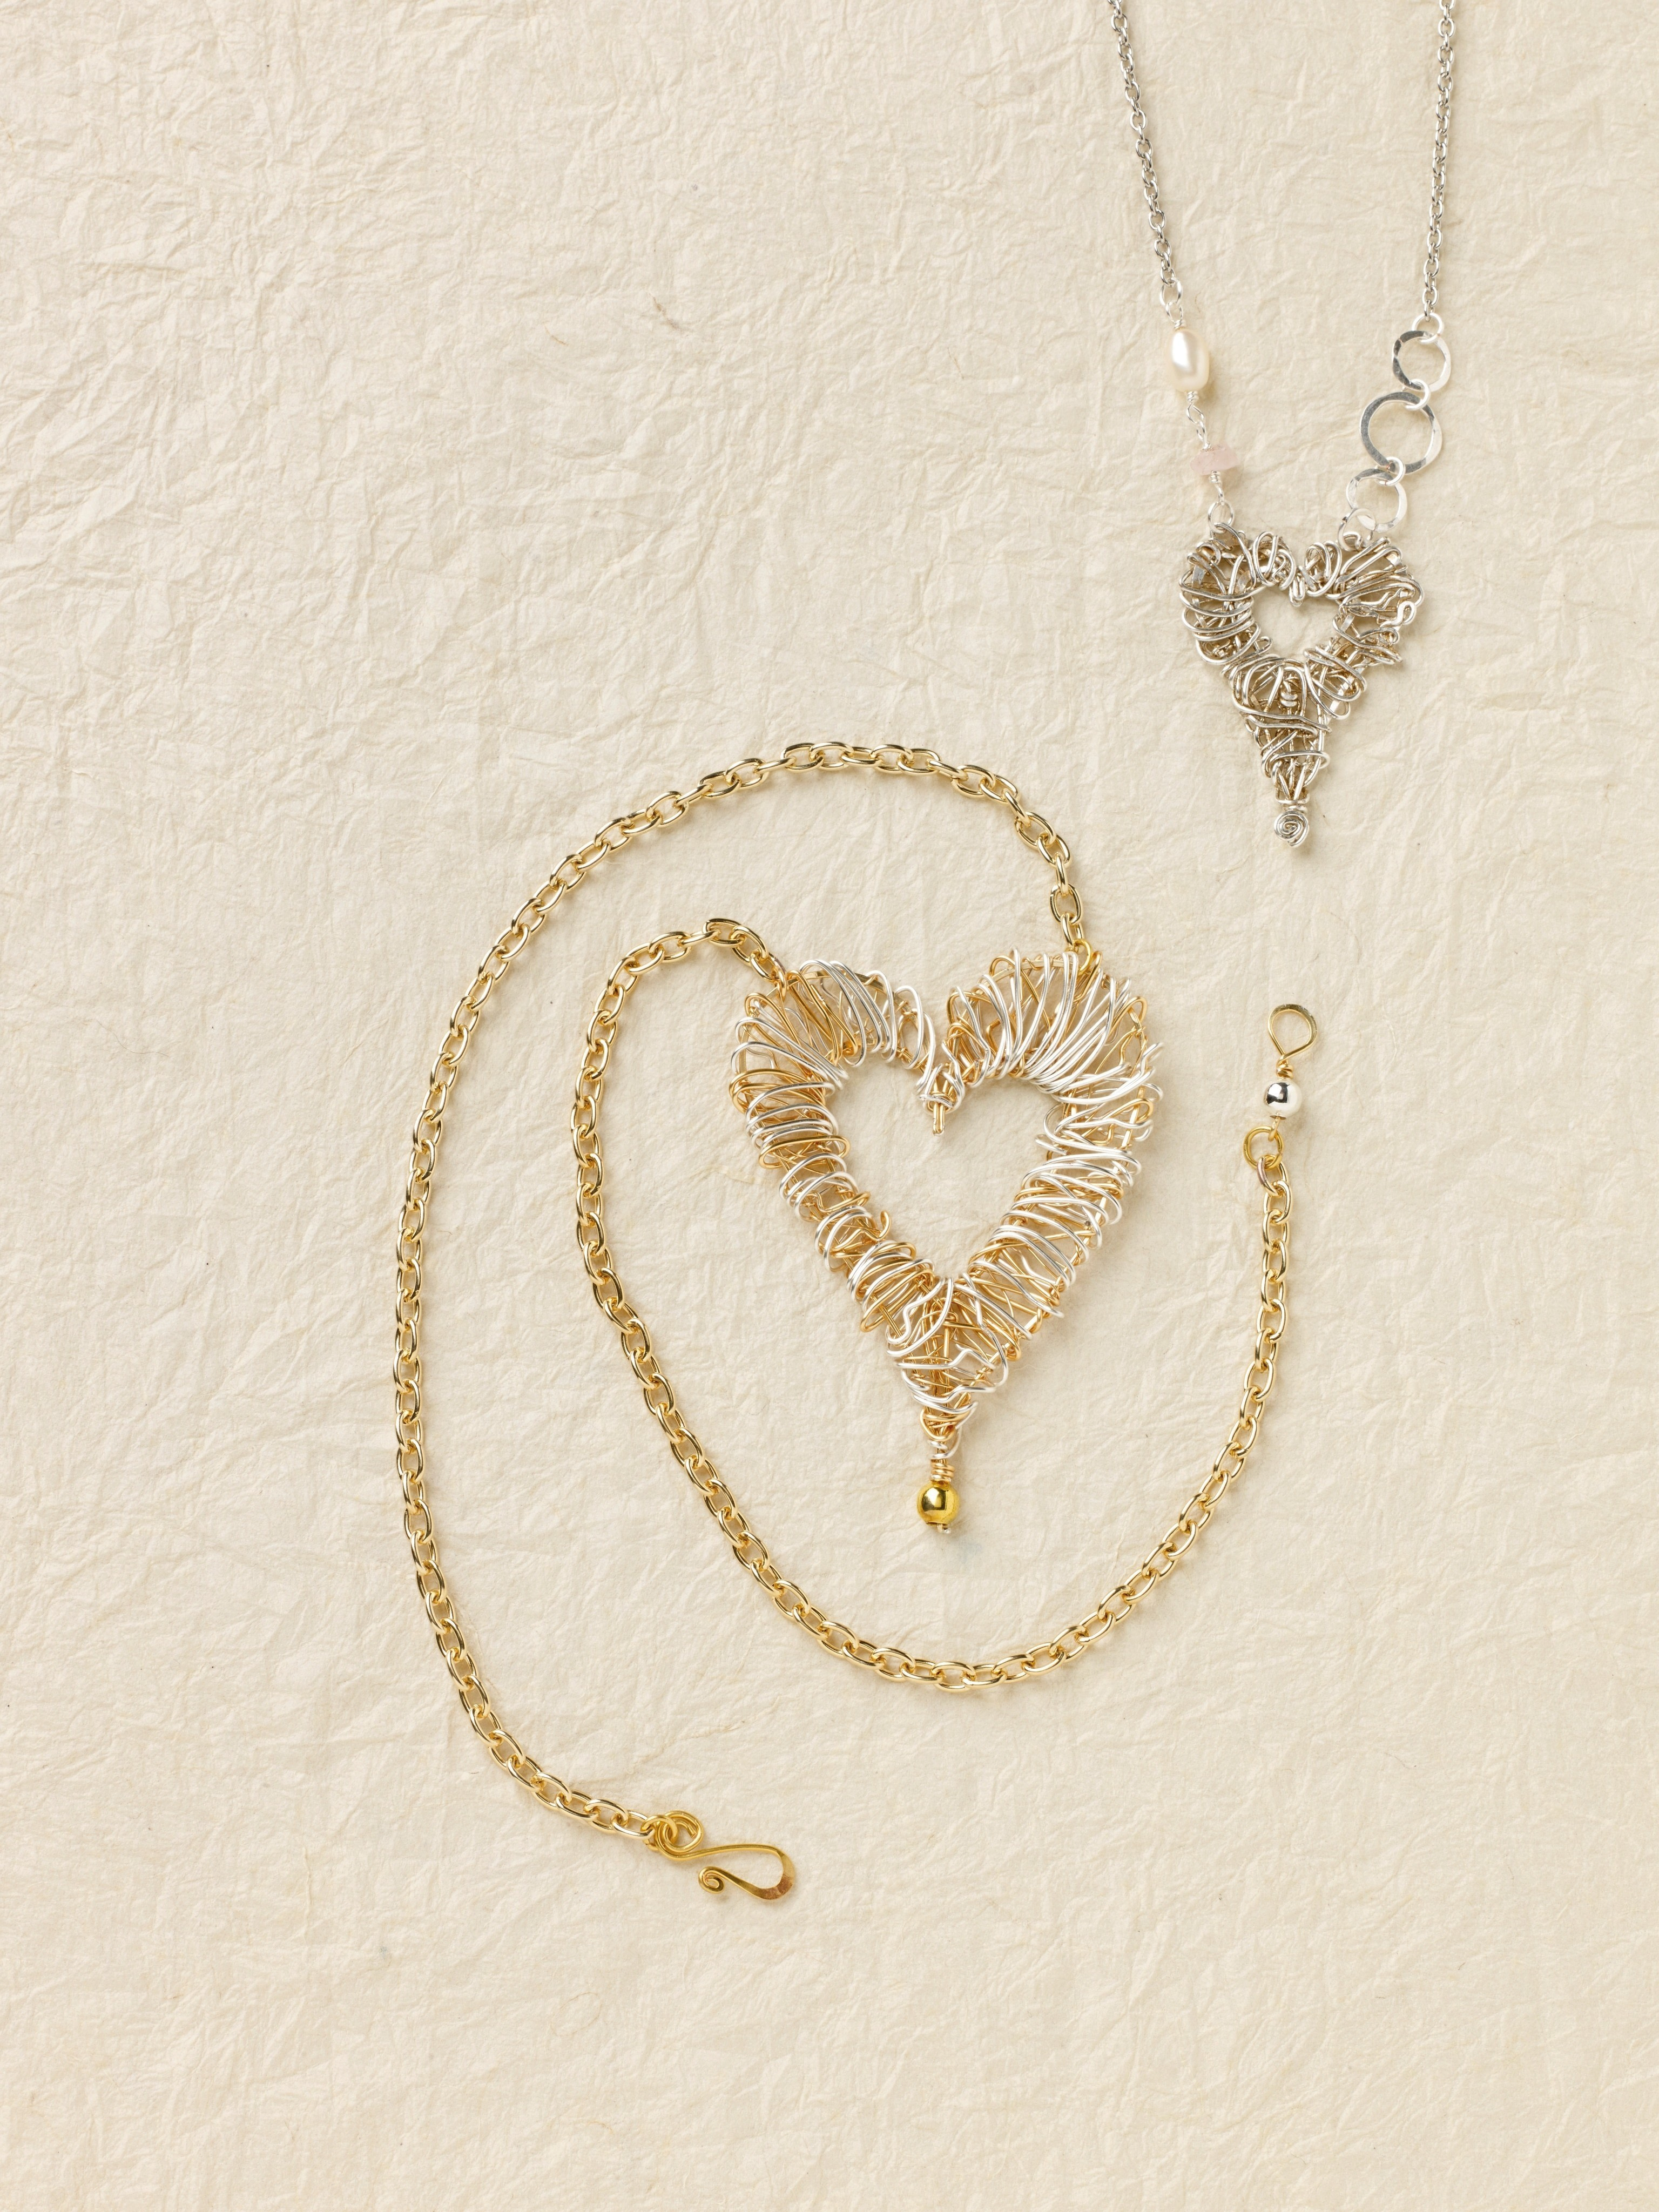 Solid Heart Pendant · Extract from How to Make Hammered Wire ...